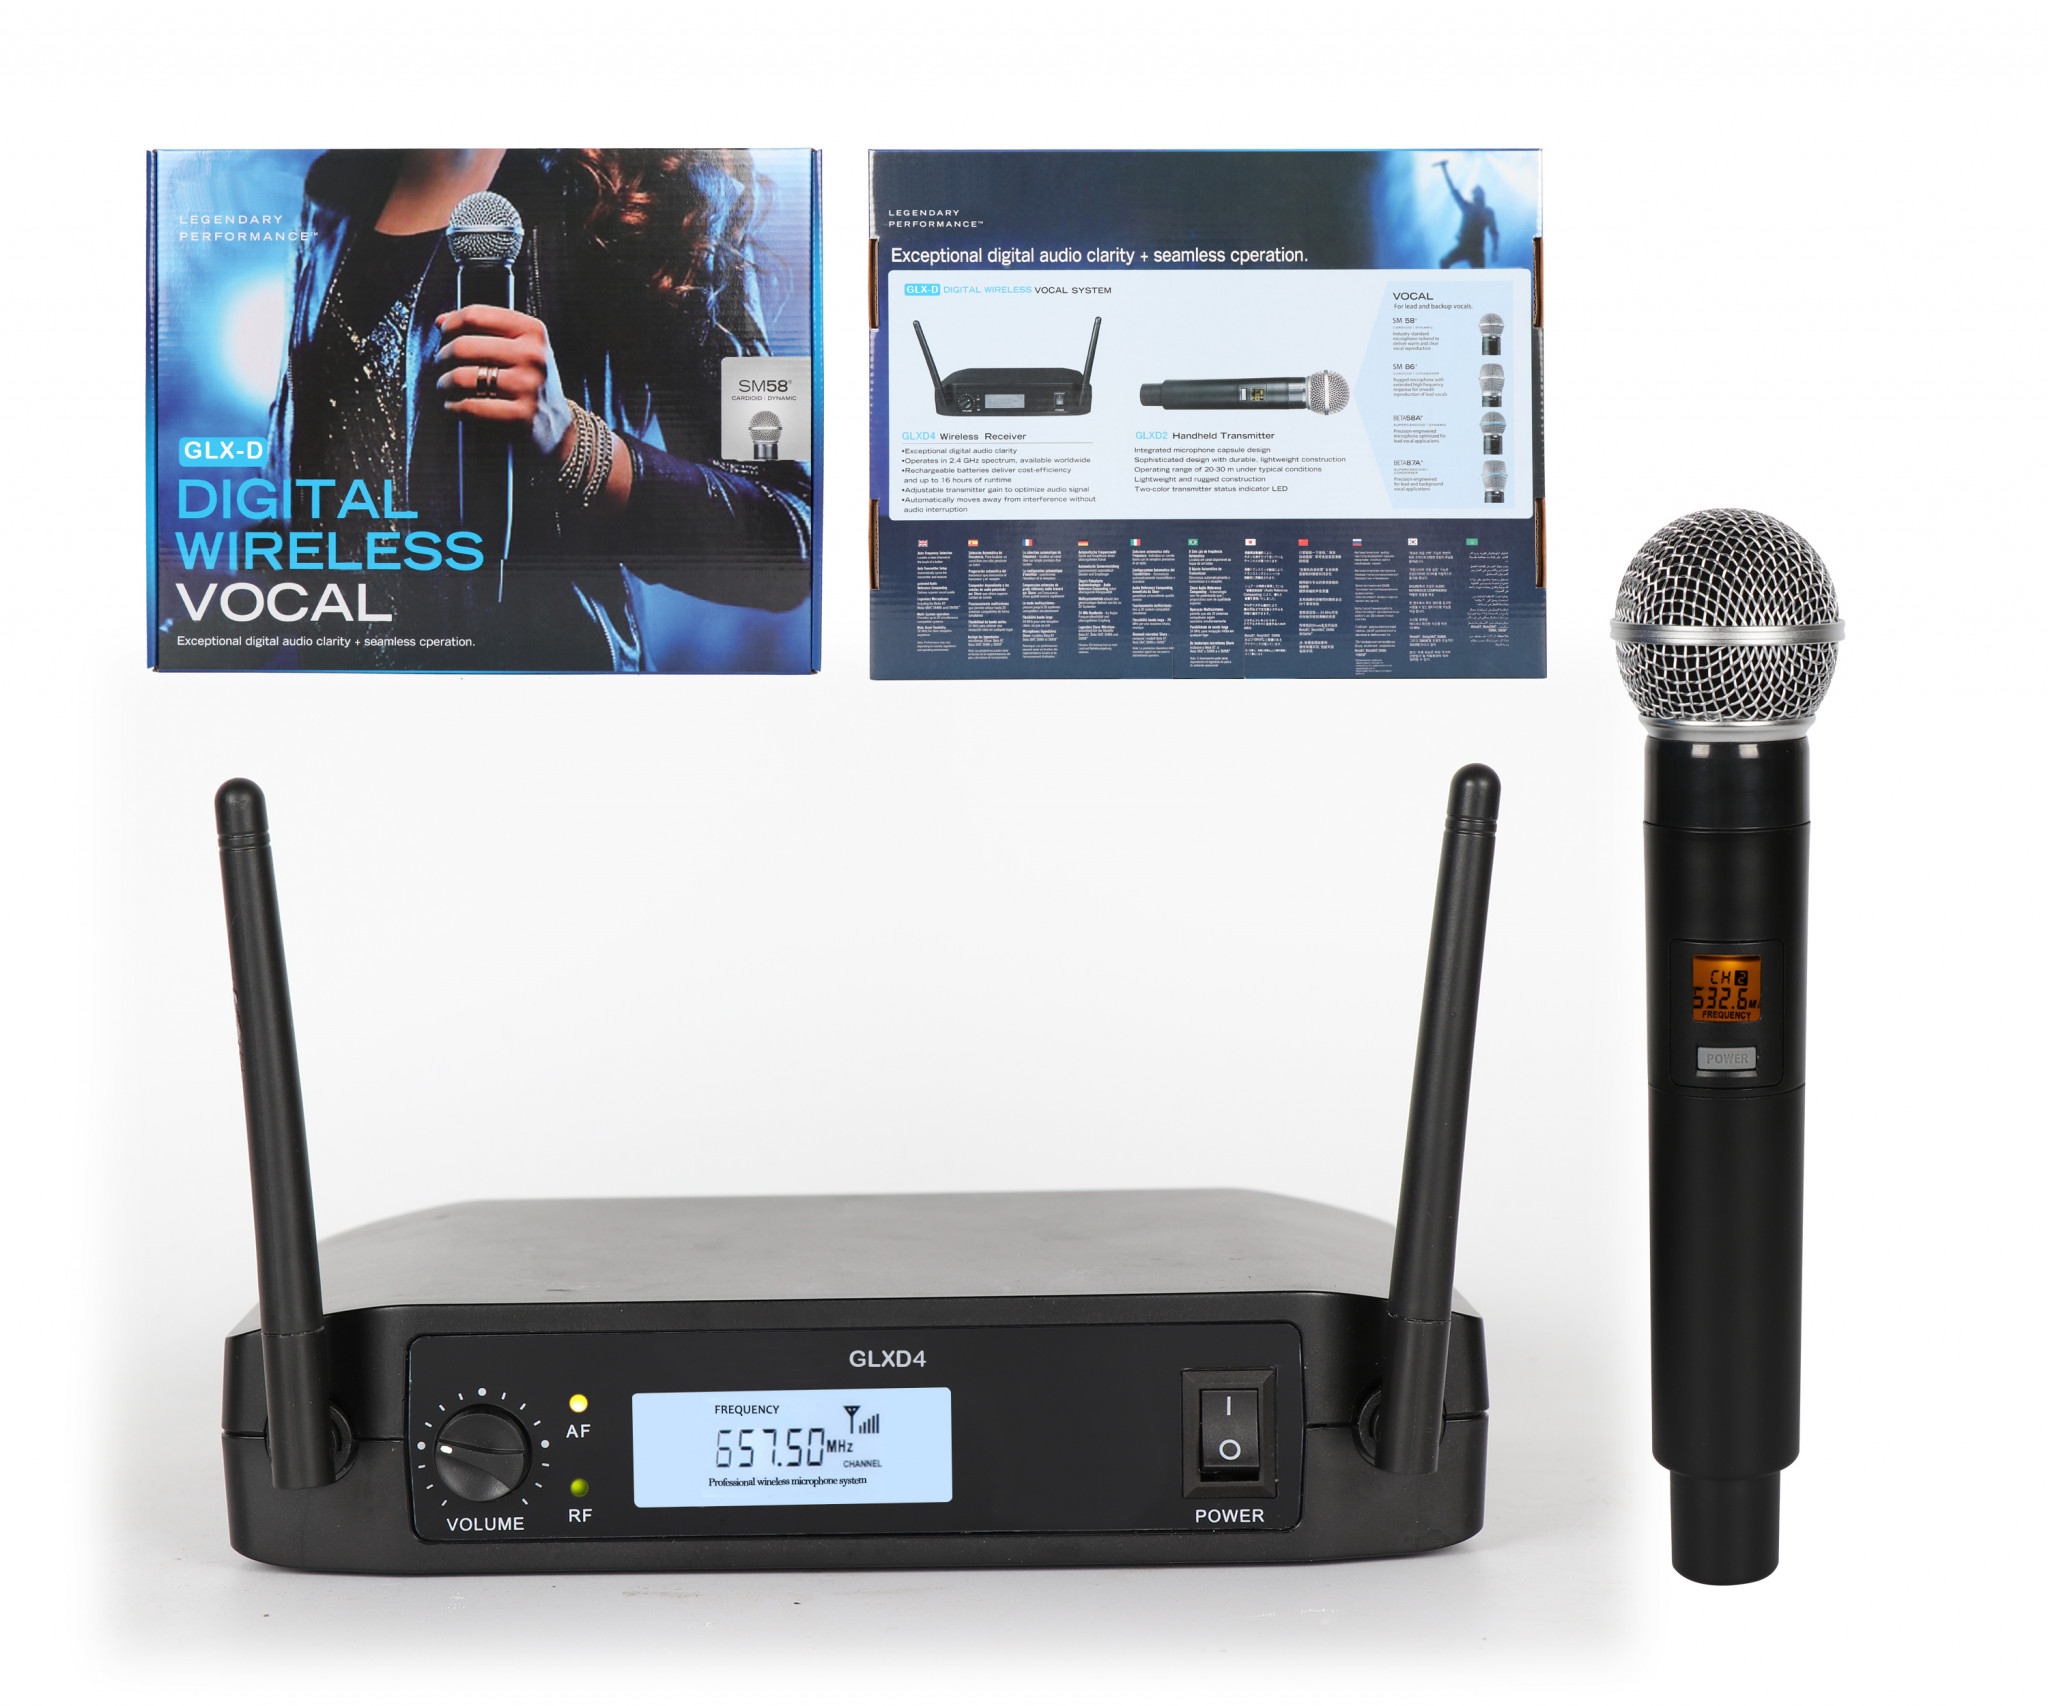 SINGLE CHANNEL UHF WIRELESS MICOPHONE